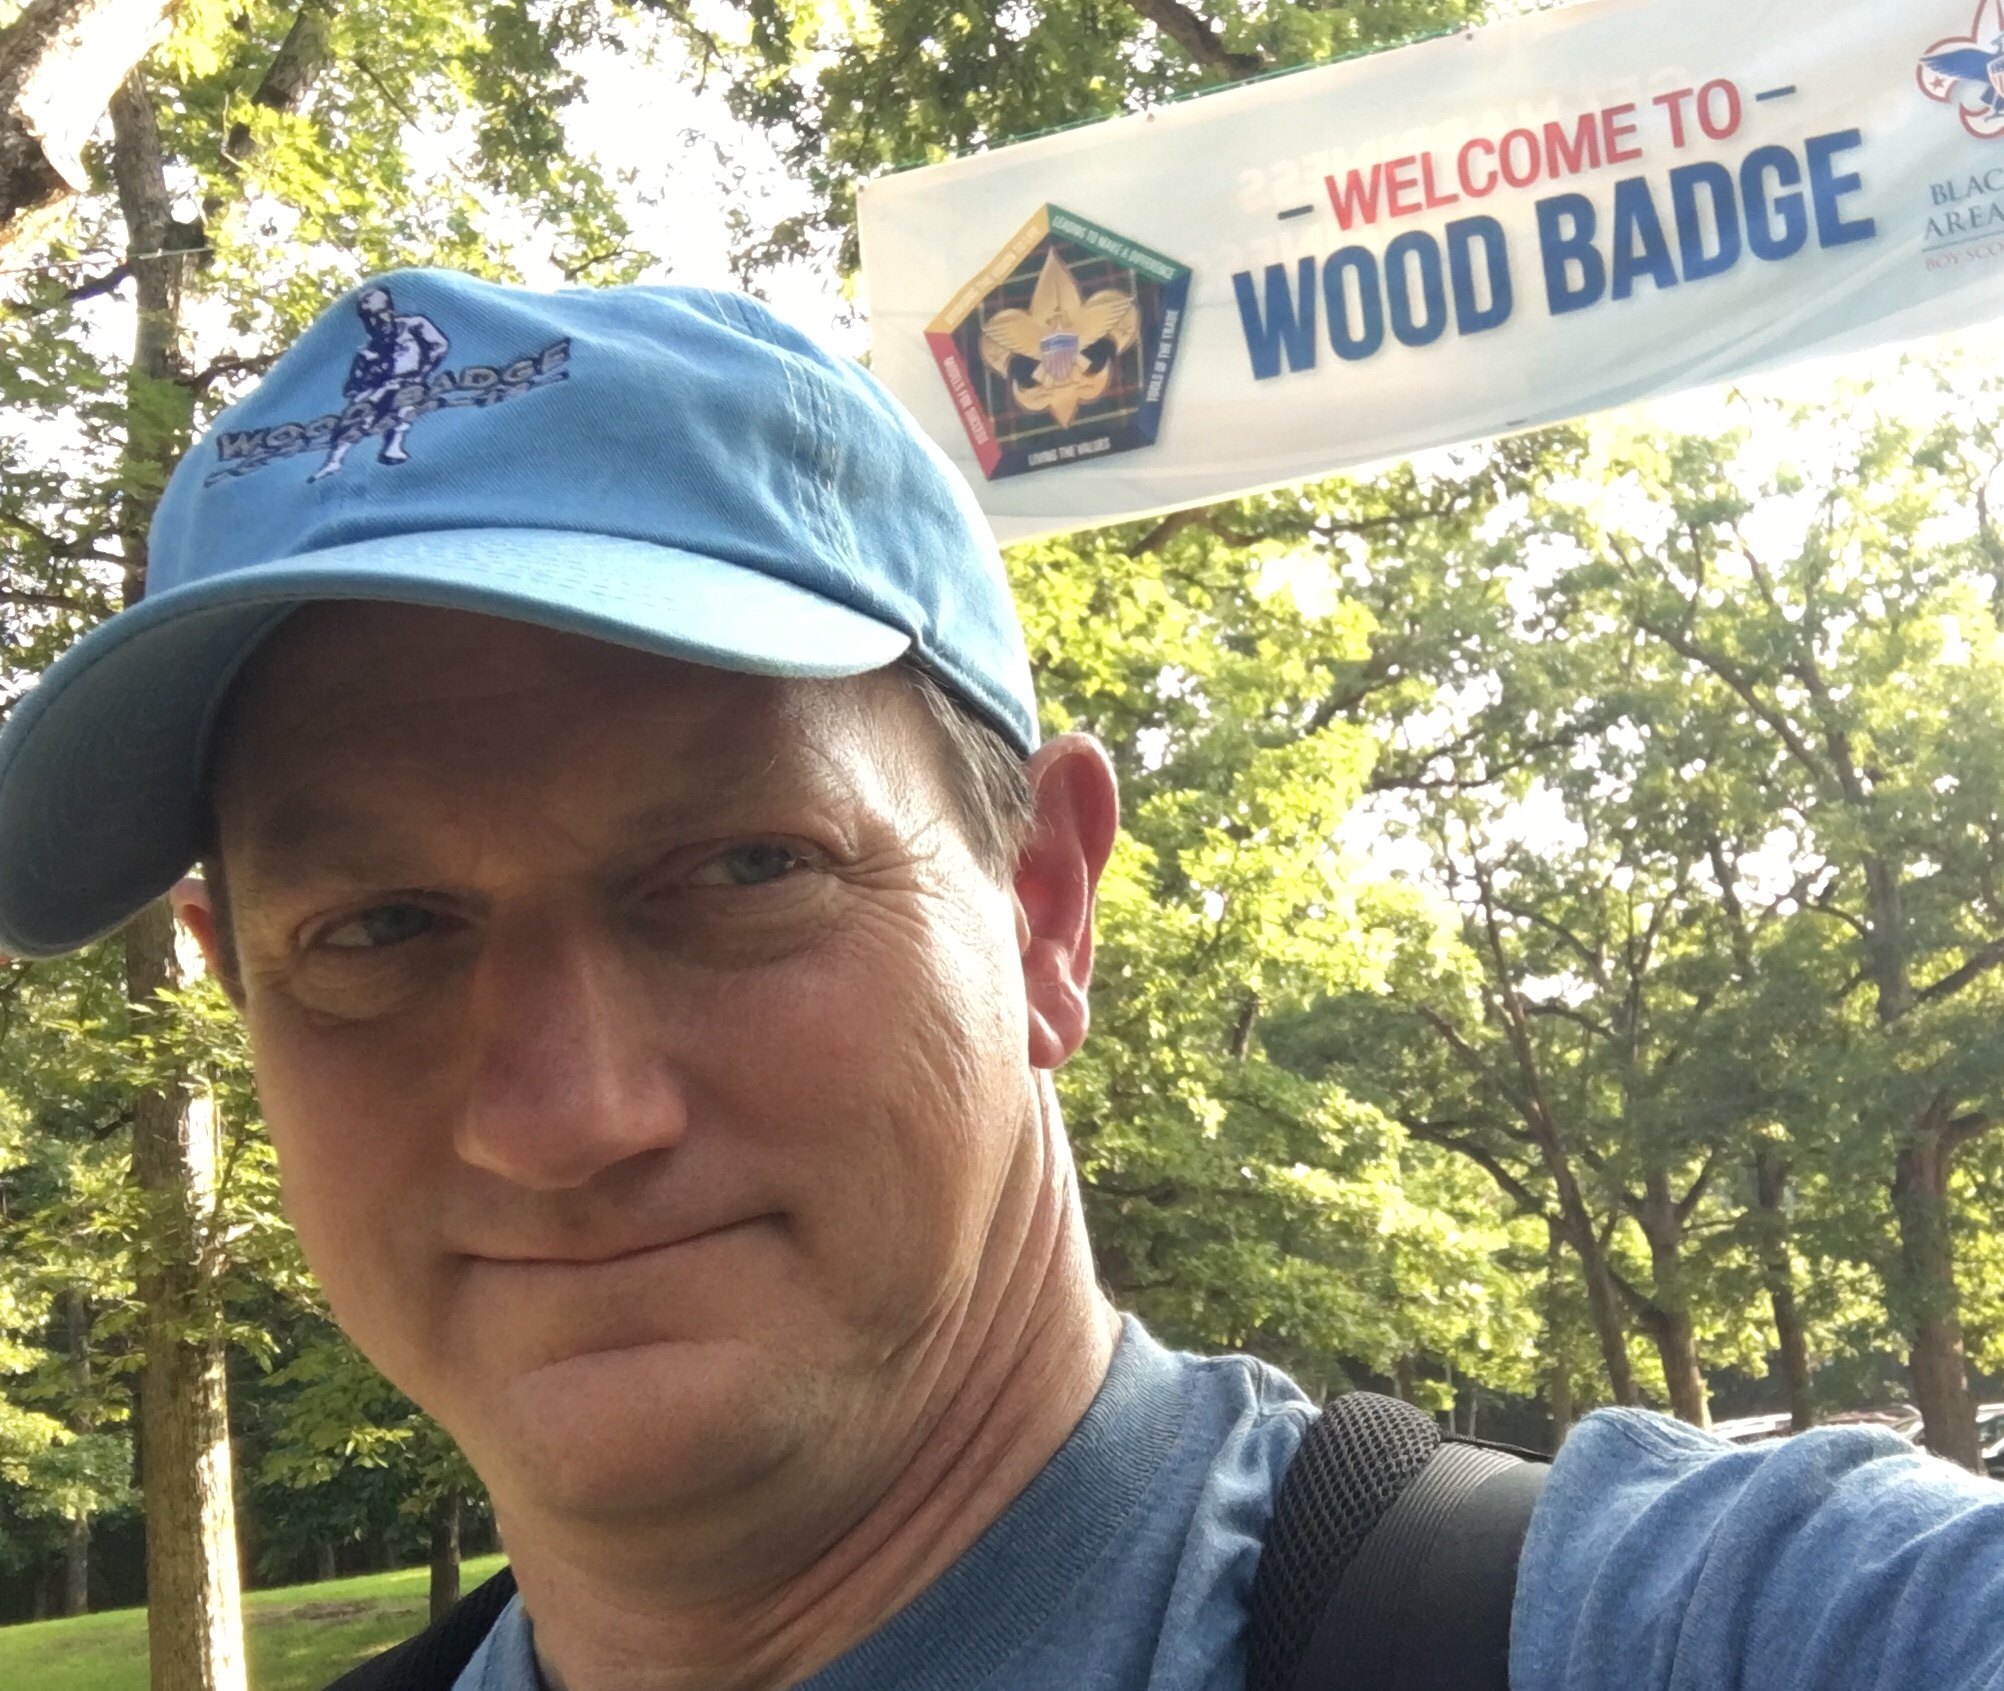 Wood Badge Part One